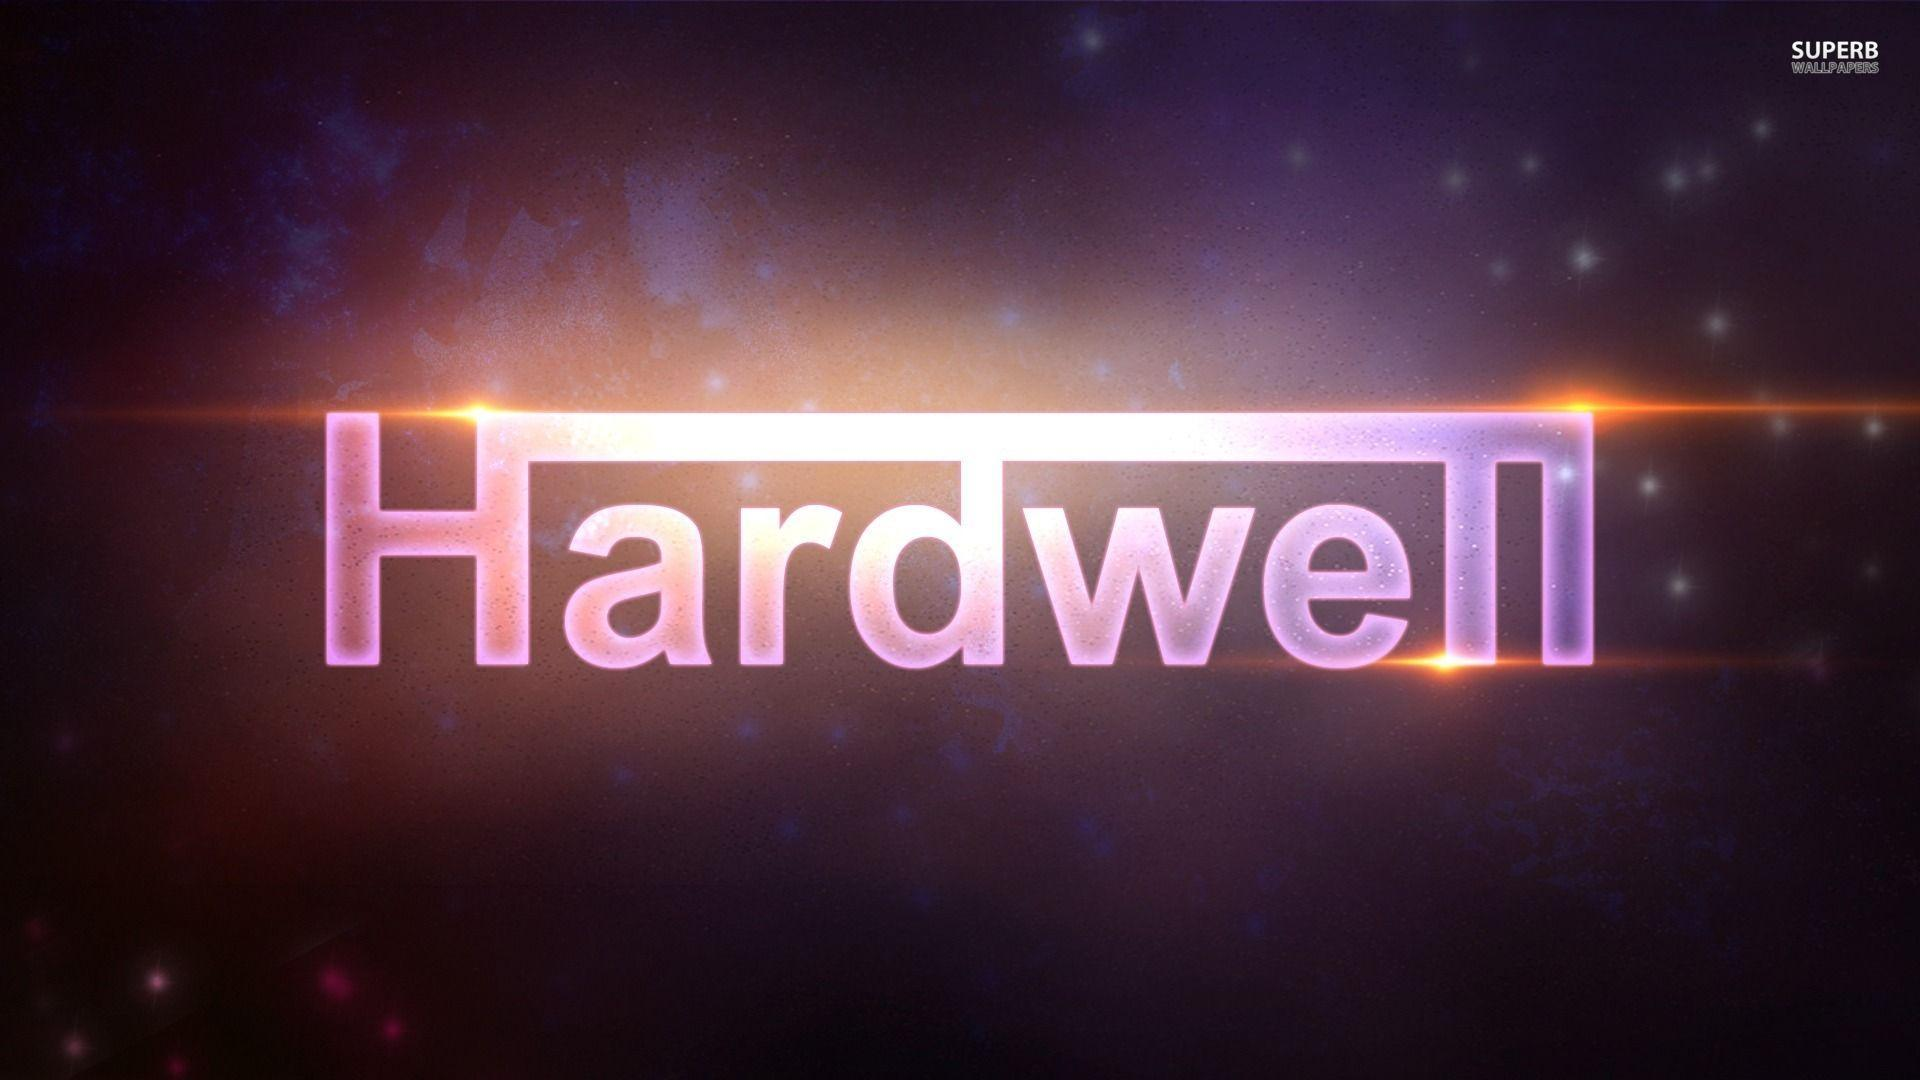 hardwell wallpaper hd - photo #15